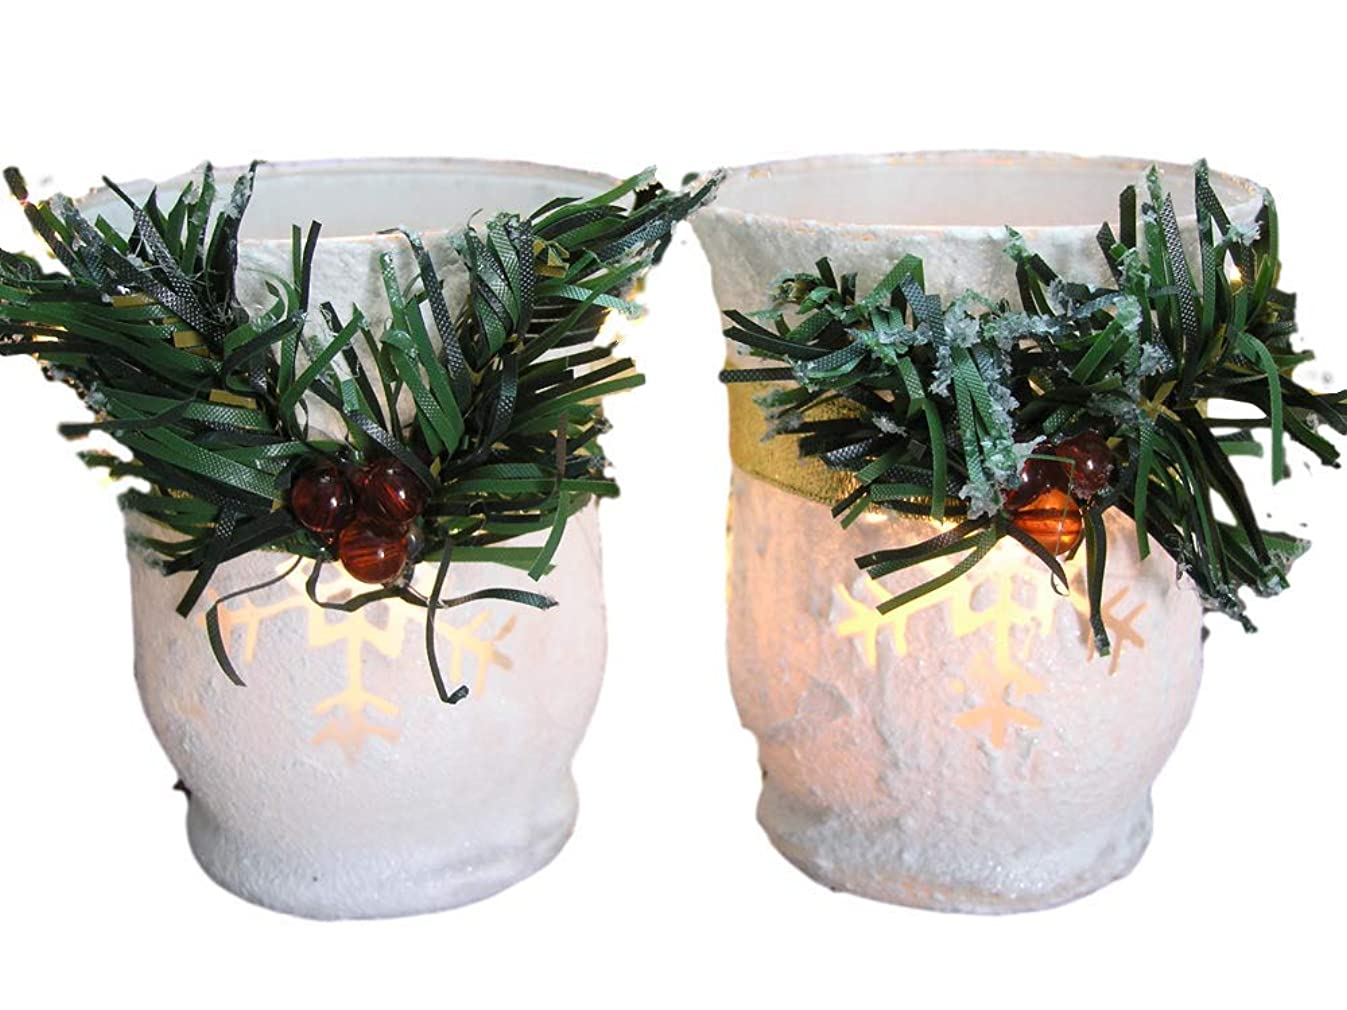 BANBERRY DESIGNS Christmas Candle Holders - Set of 2 White Glitter Votive Holders with Greenery and Berries - LED Flameless Candles Included - Christmas Centerpiece Candles